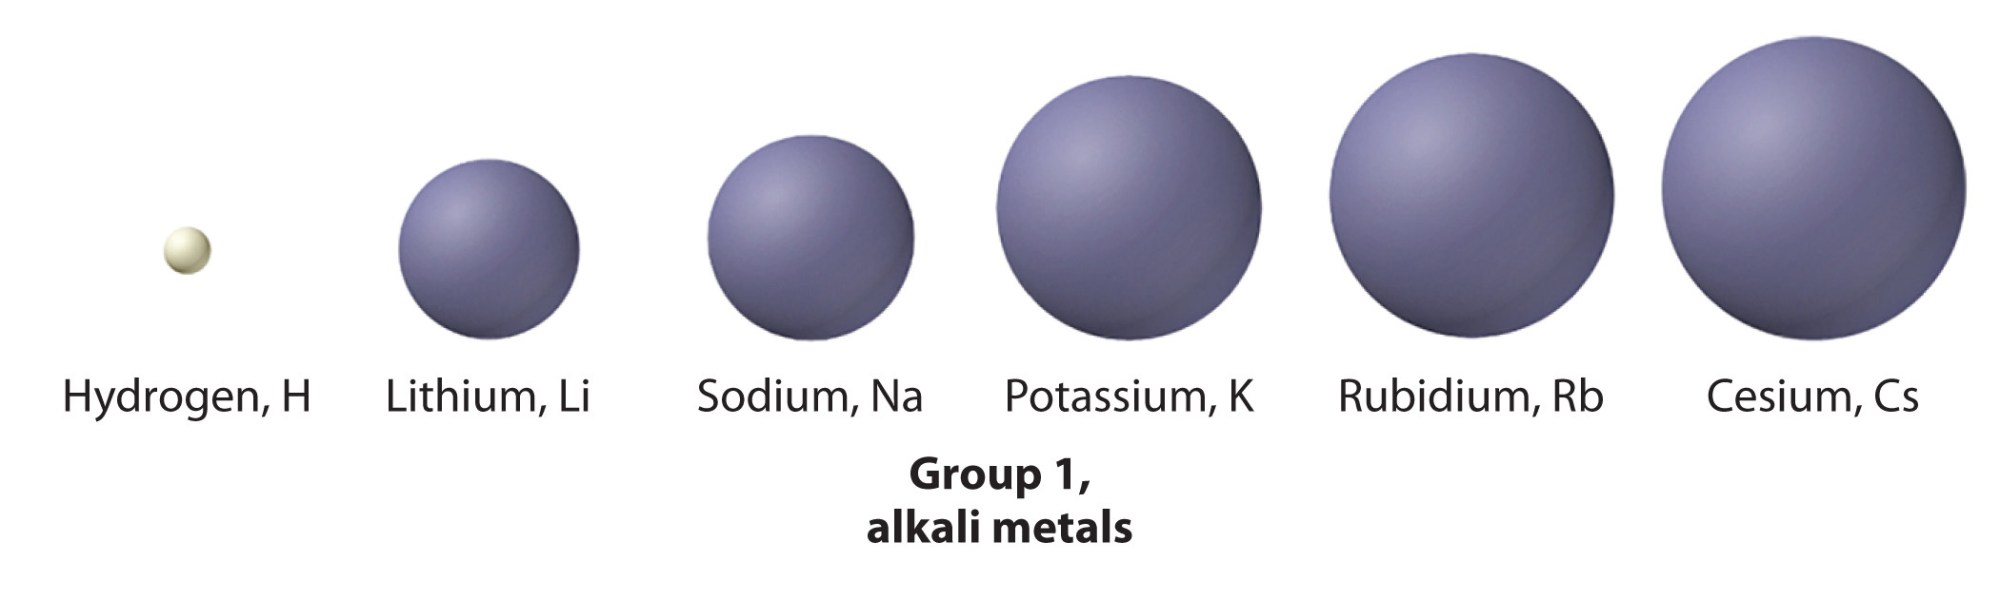 hight resolution of group 1 the alkali metals